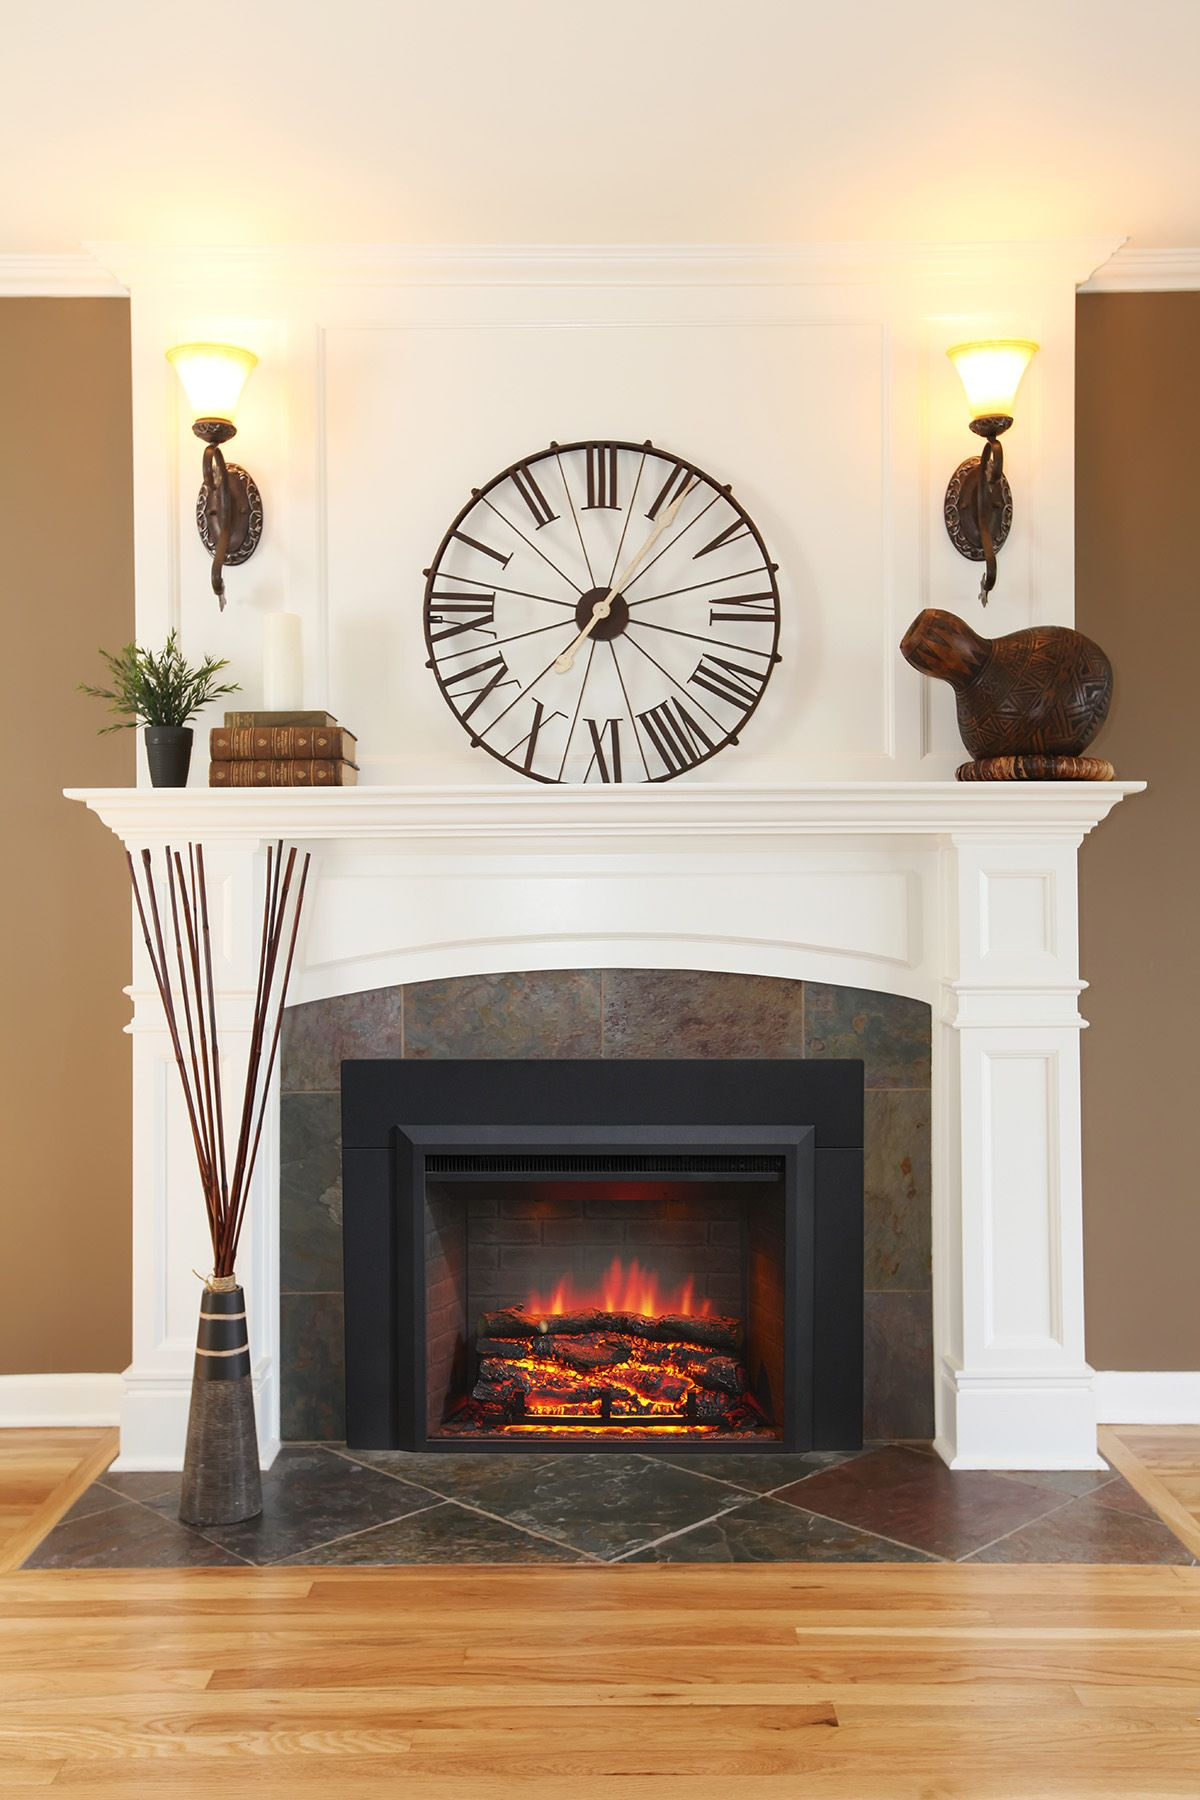 An Electric Fireplace Insert Convert Your Old Wood